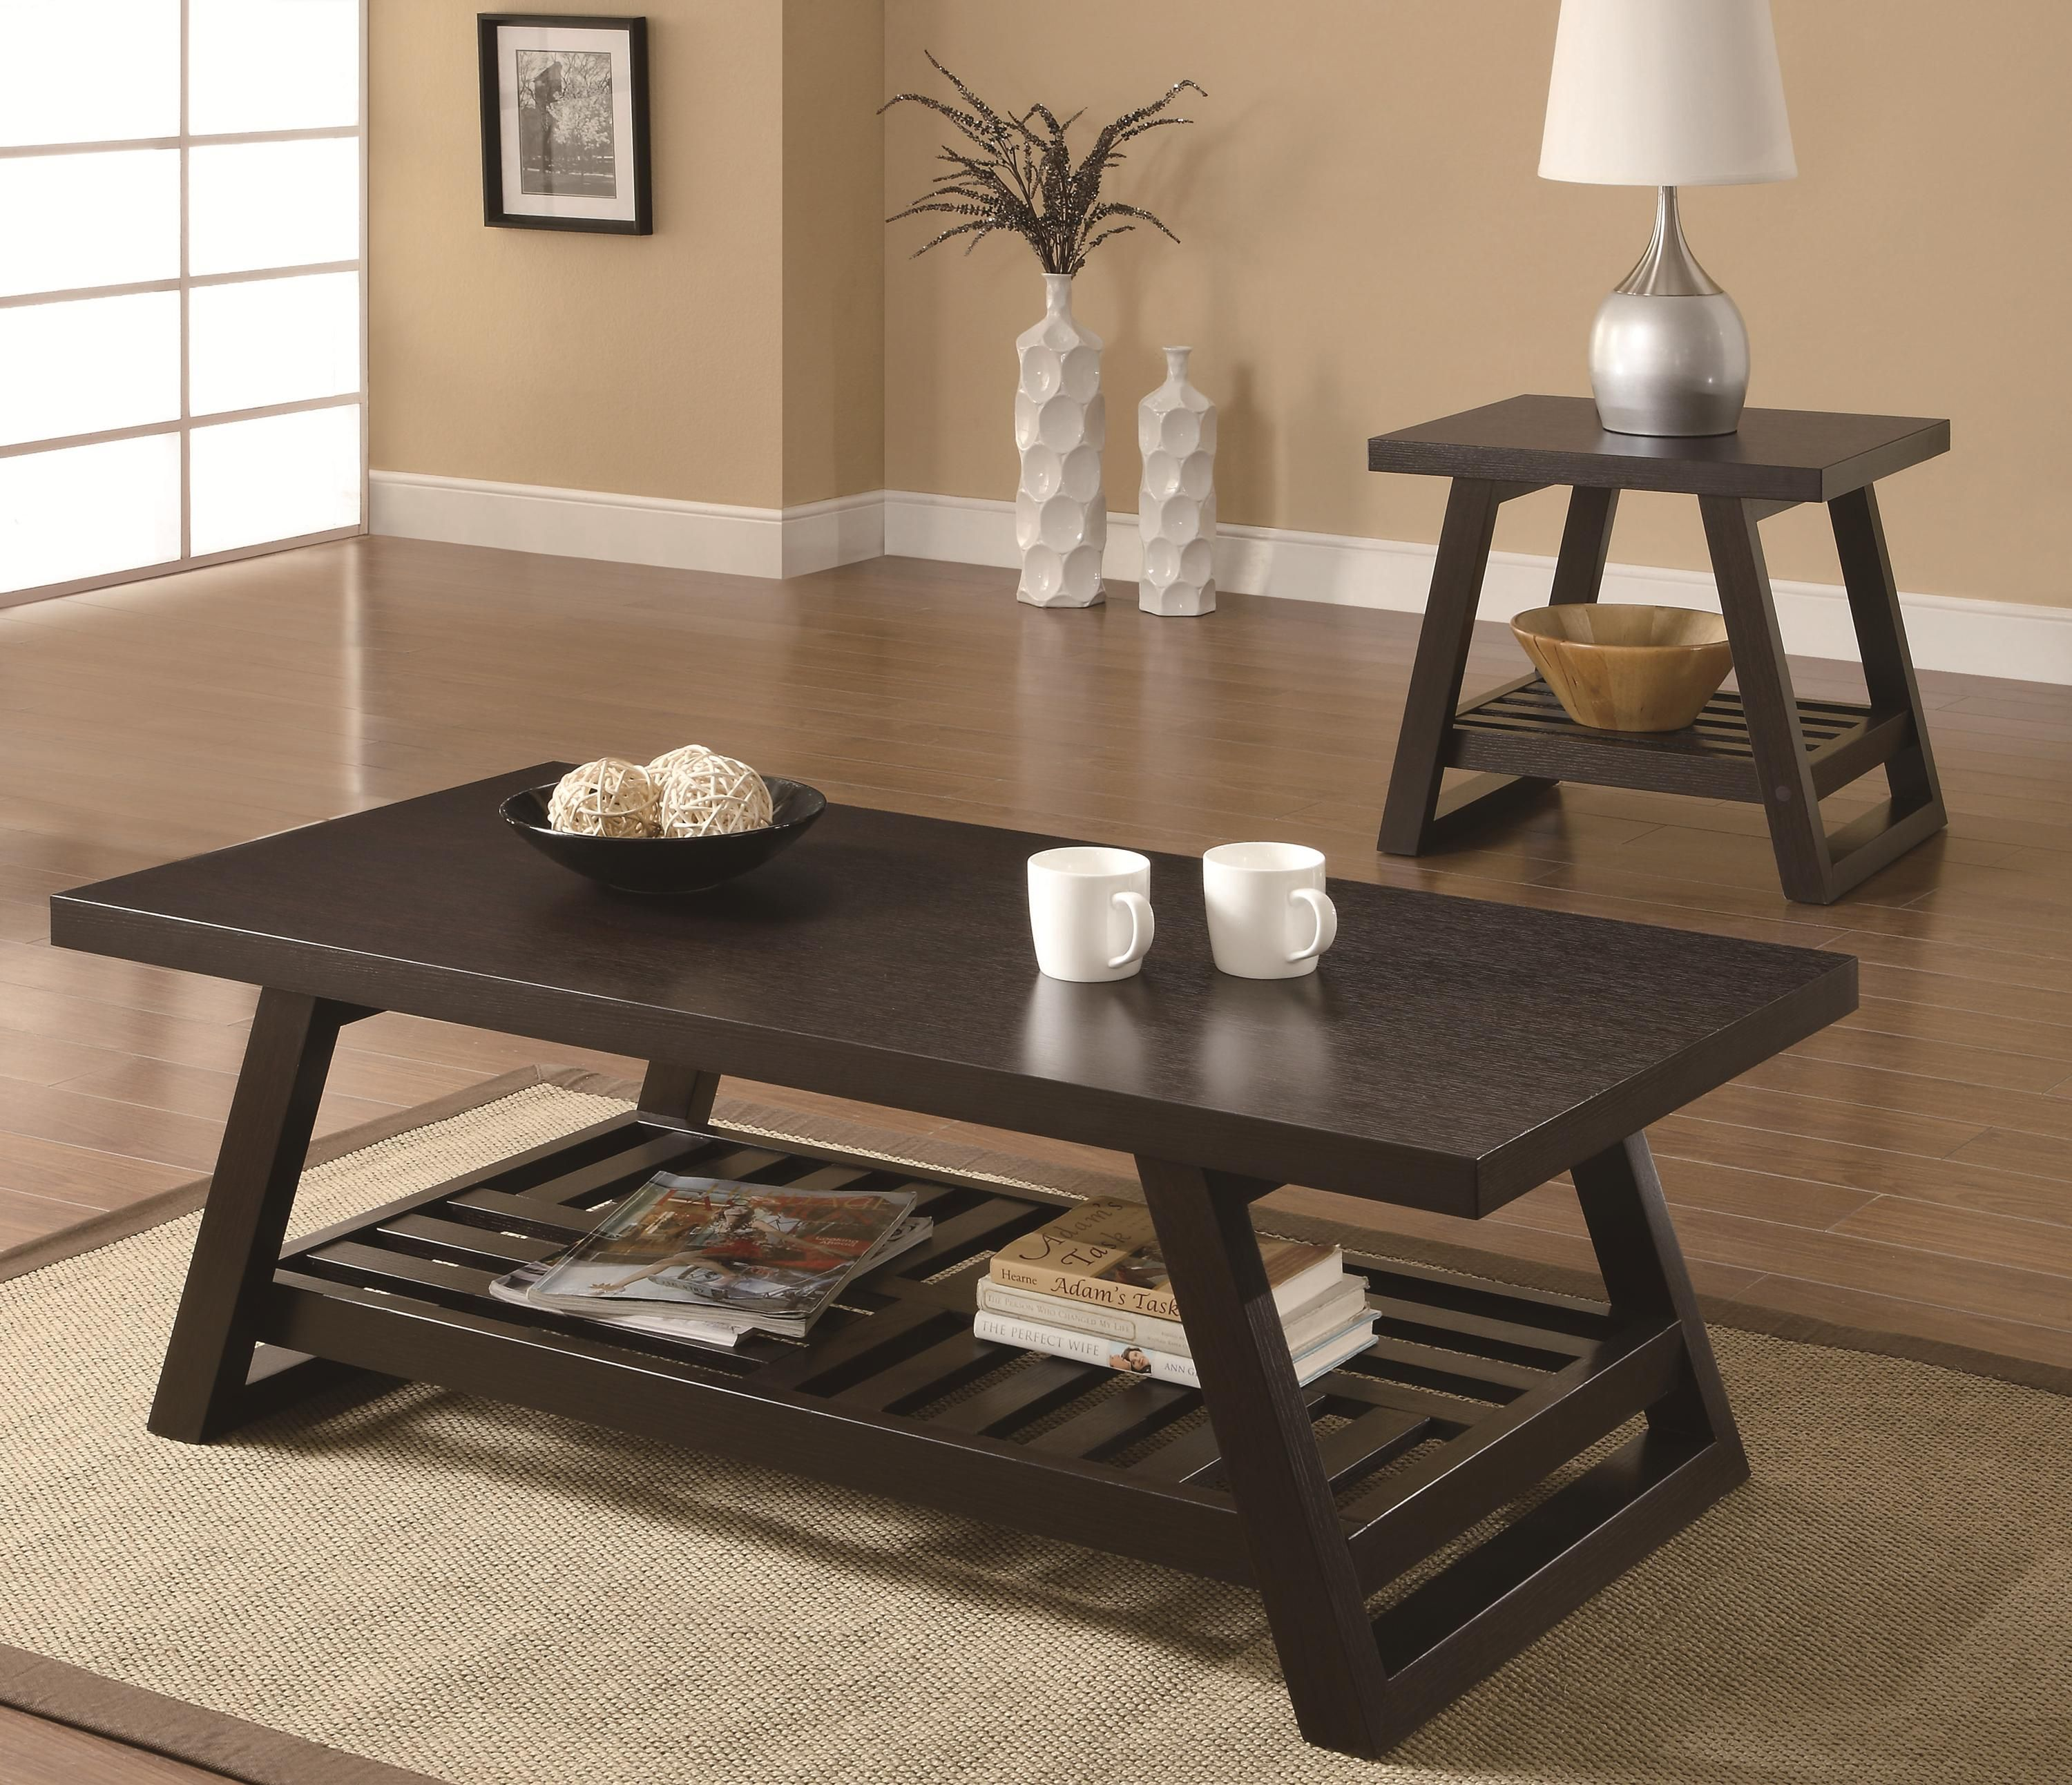 Asian Inspired Coffee End Table Set Finished In Cappuccino Offers Style Function With An Open Des Home Coffee Tables Coffee Table Contemporary Coffee Table [ 2585 x 3000 Pixel ]